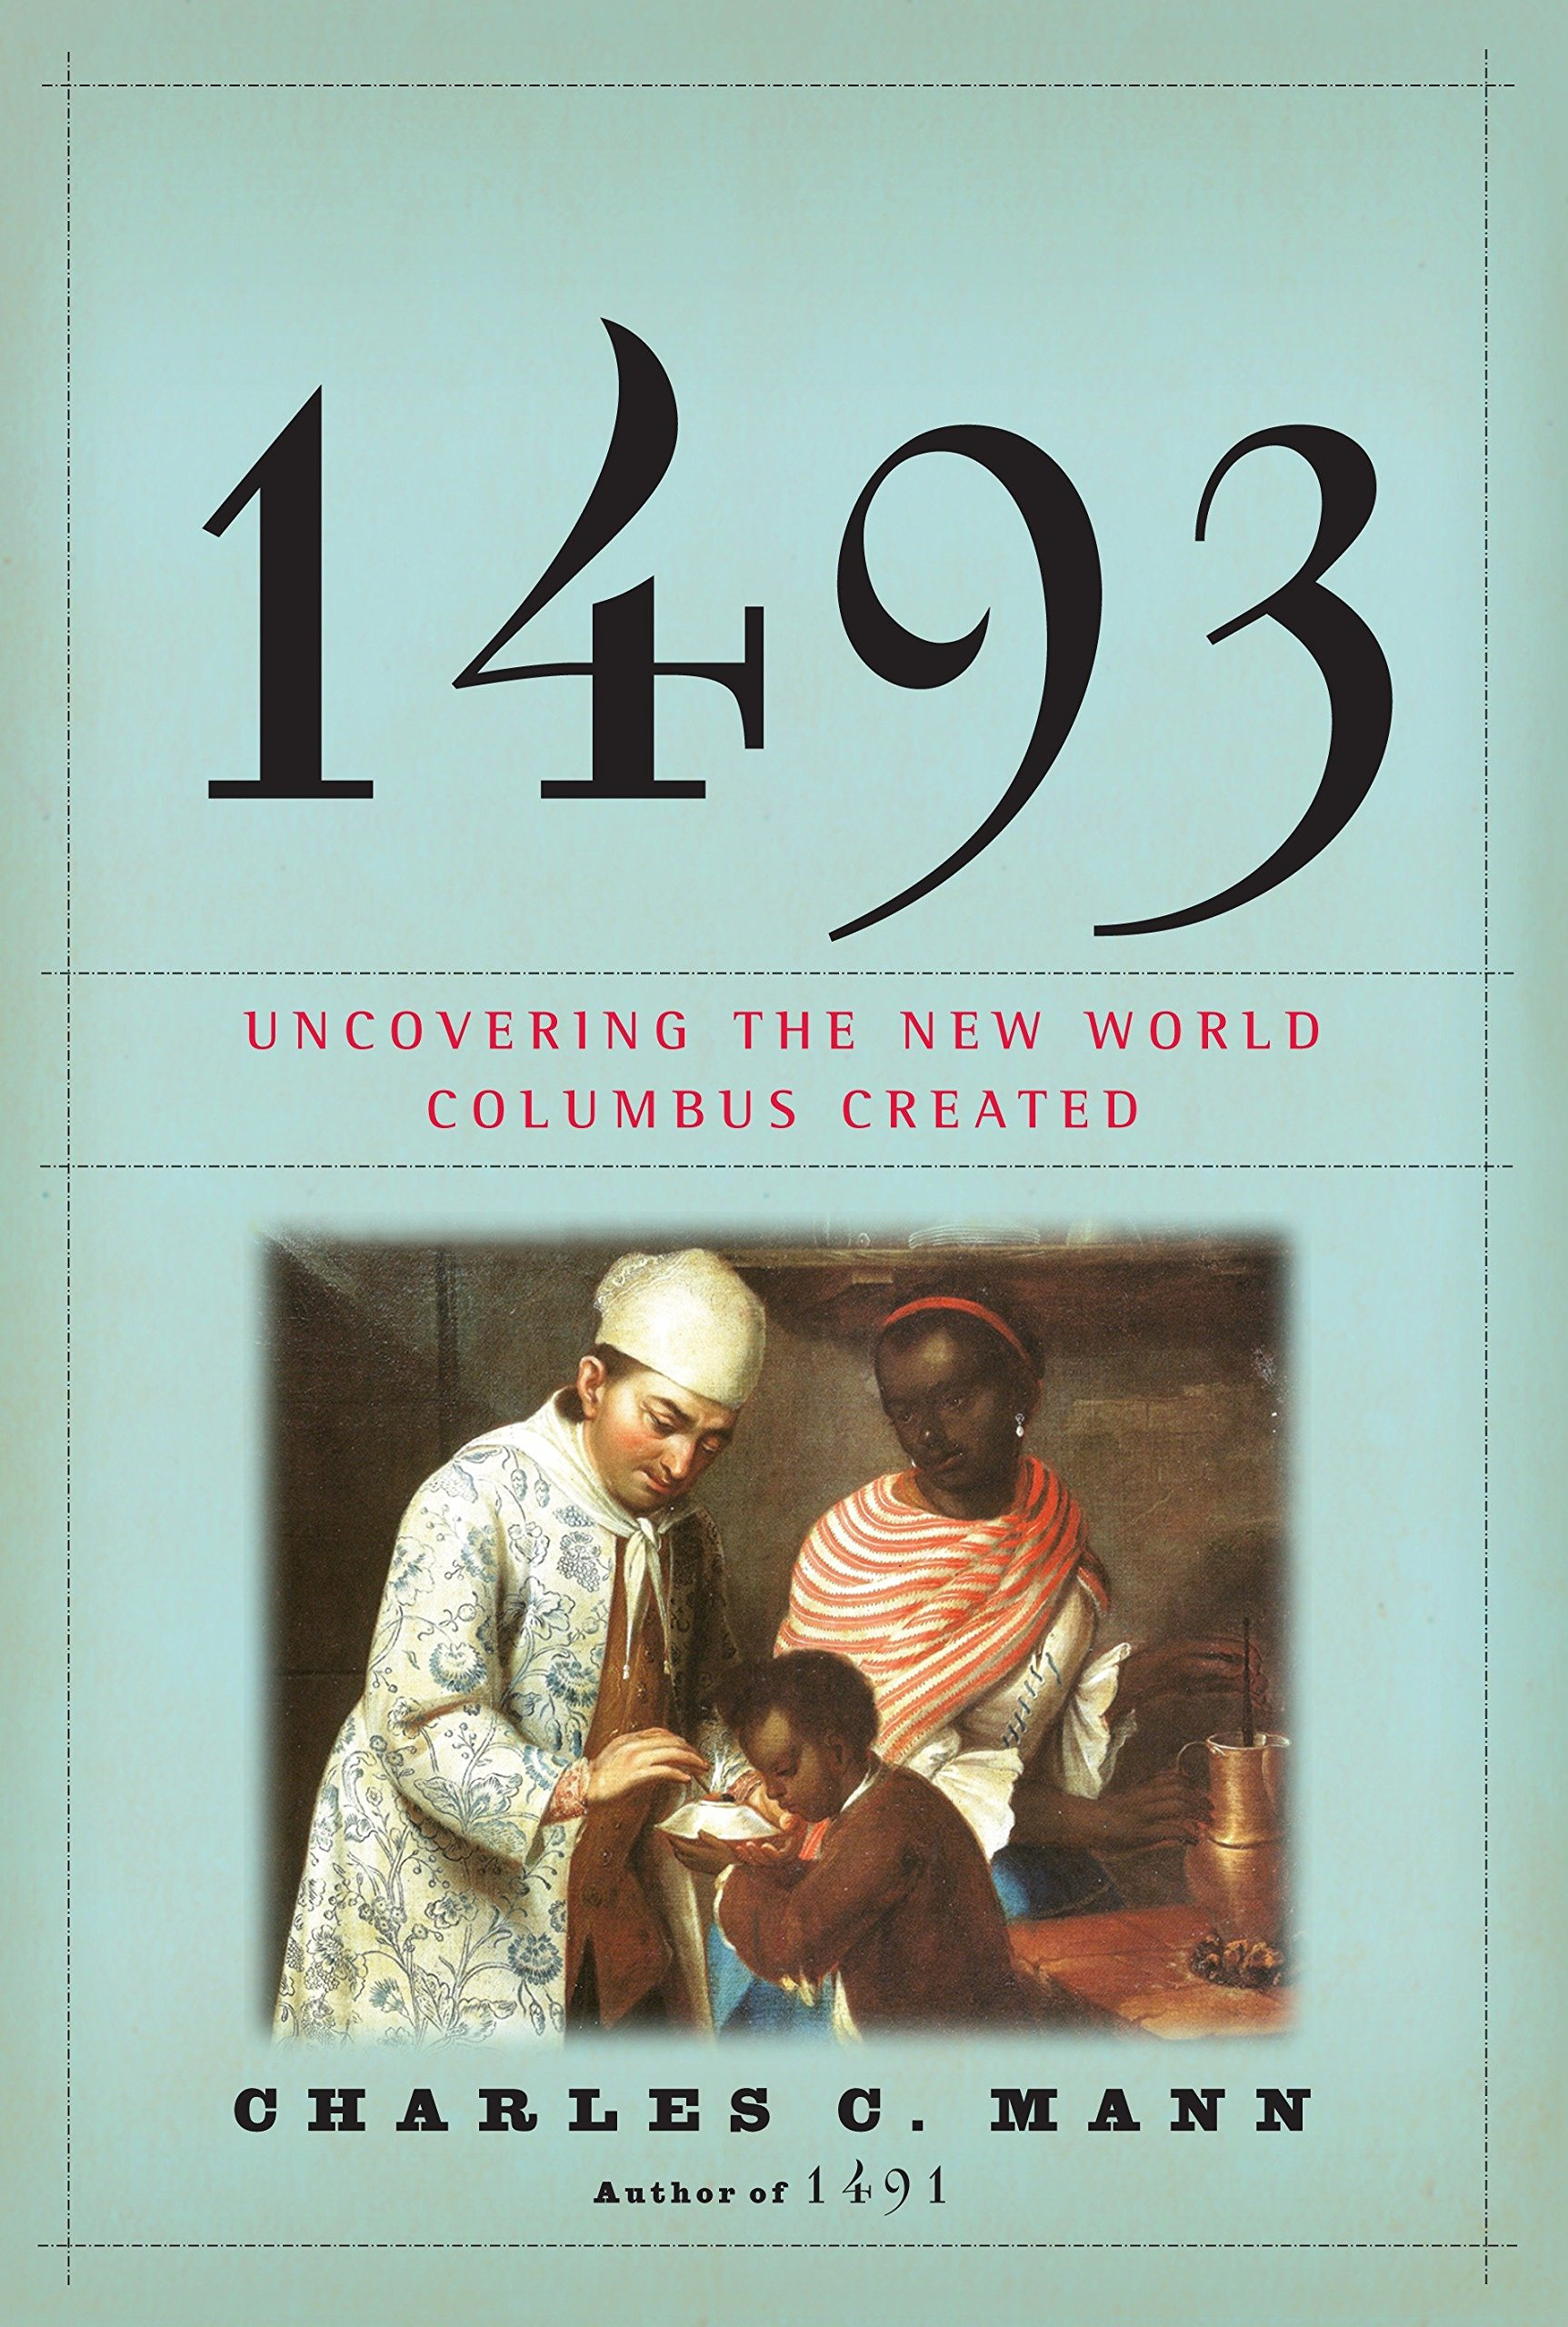 1493 uncovering the new world columbus created charles c mann 1493 uncovering the new world columbus created charles c mann 9780307265722 amazon books fandeluxe Images